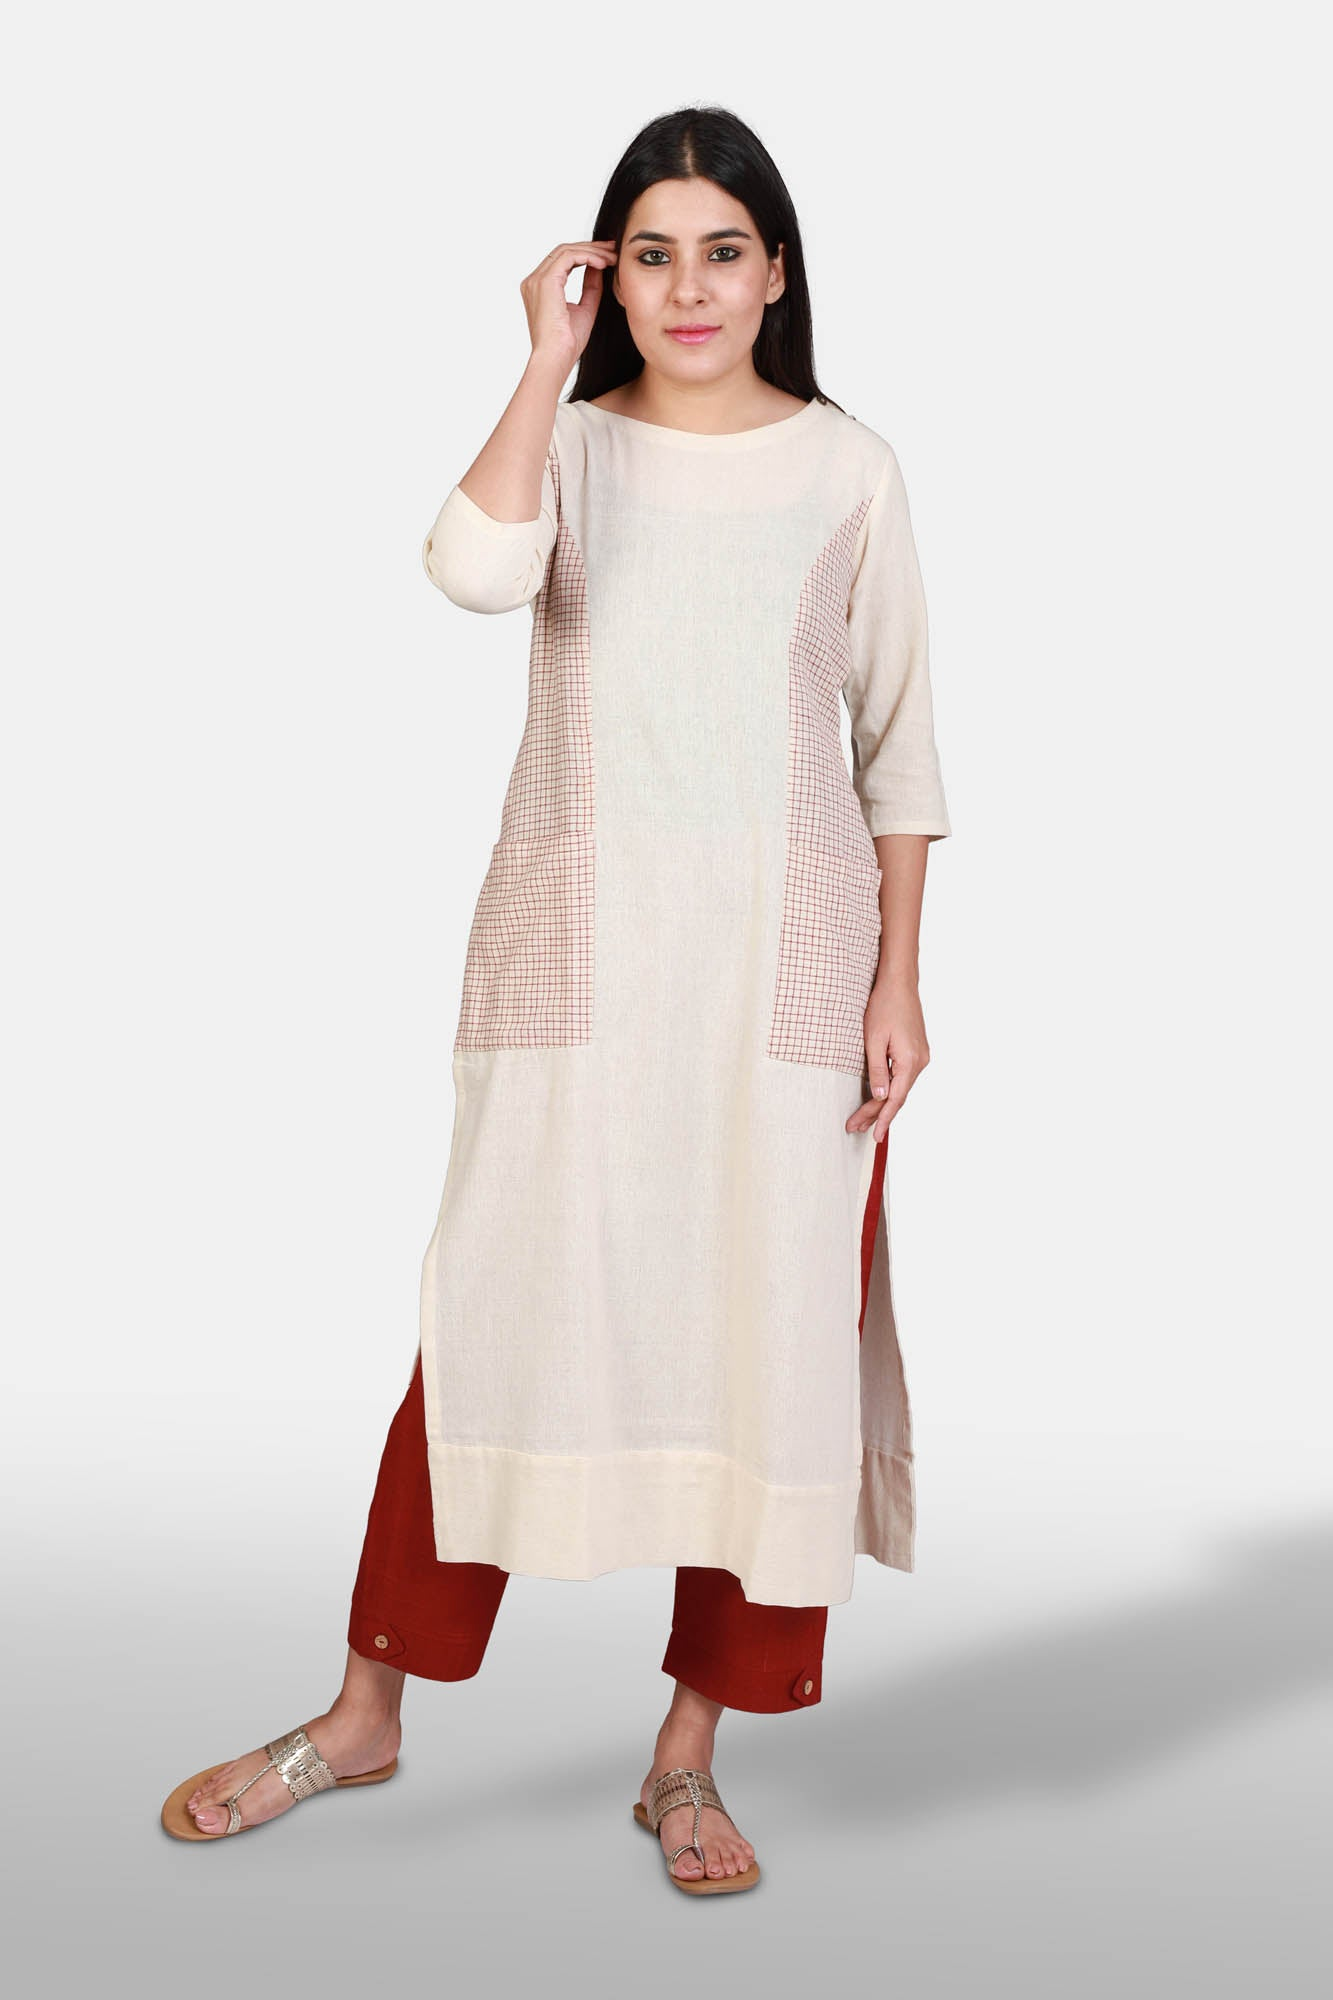 Off-white kotpad princess cut kurta - Kapaas N Resham